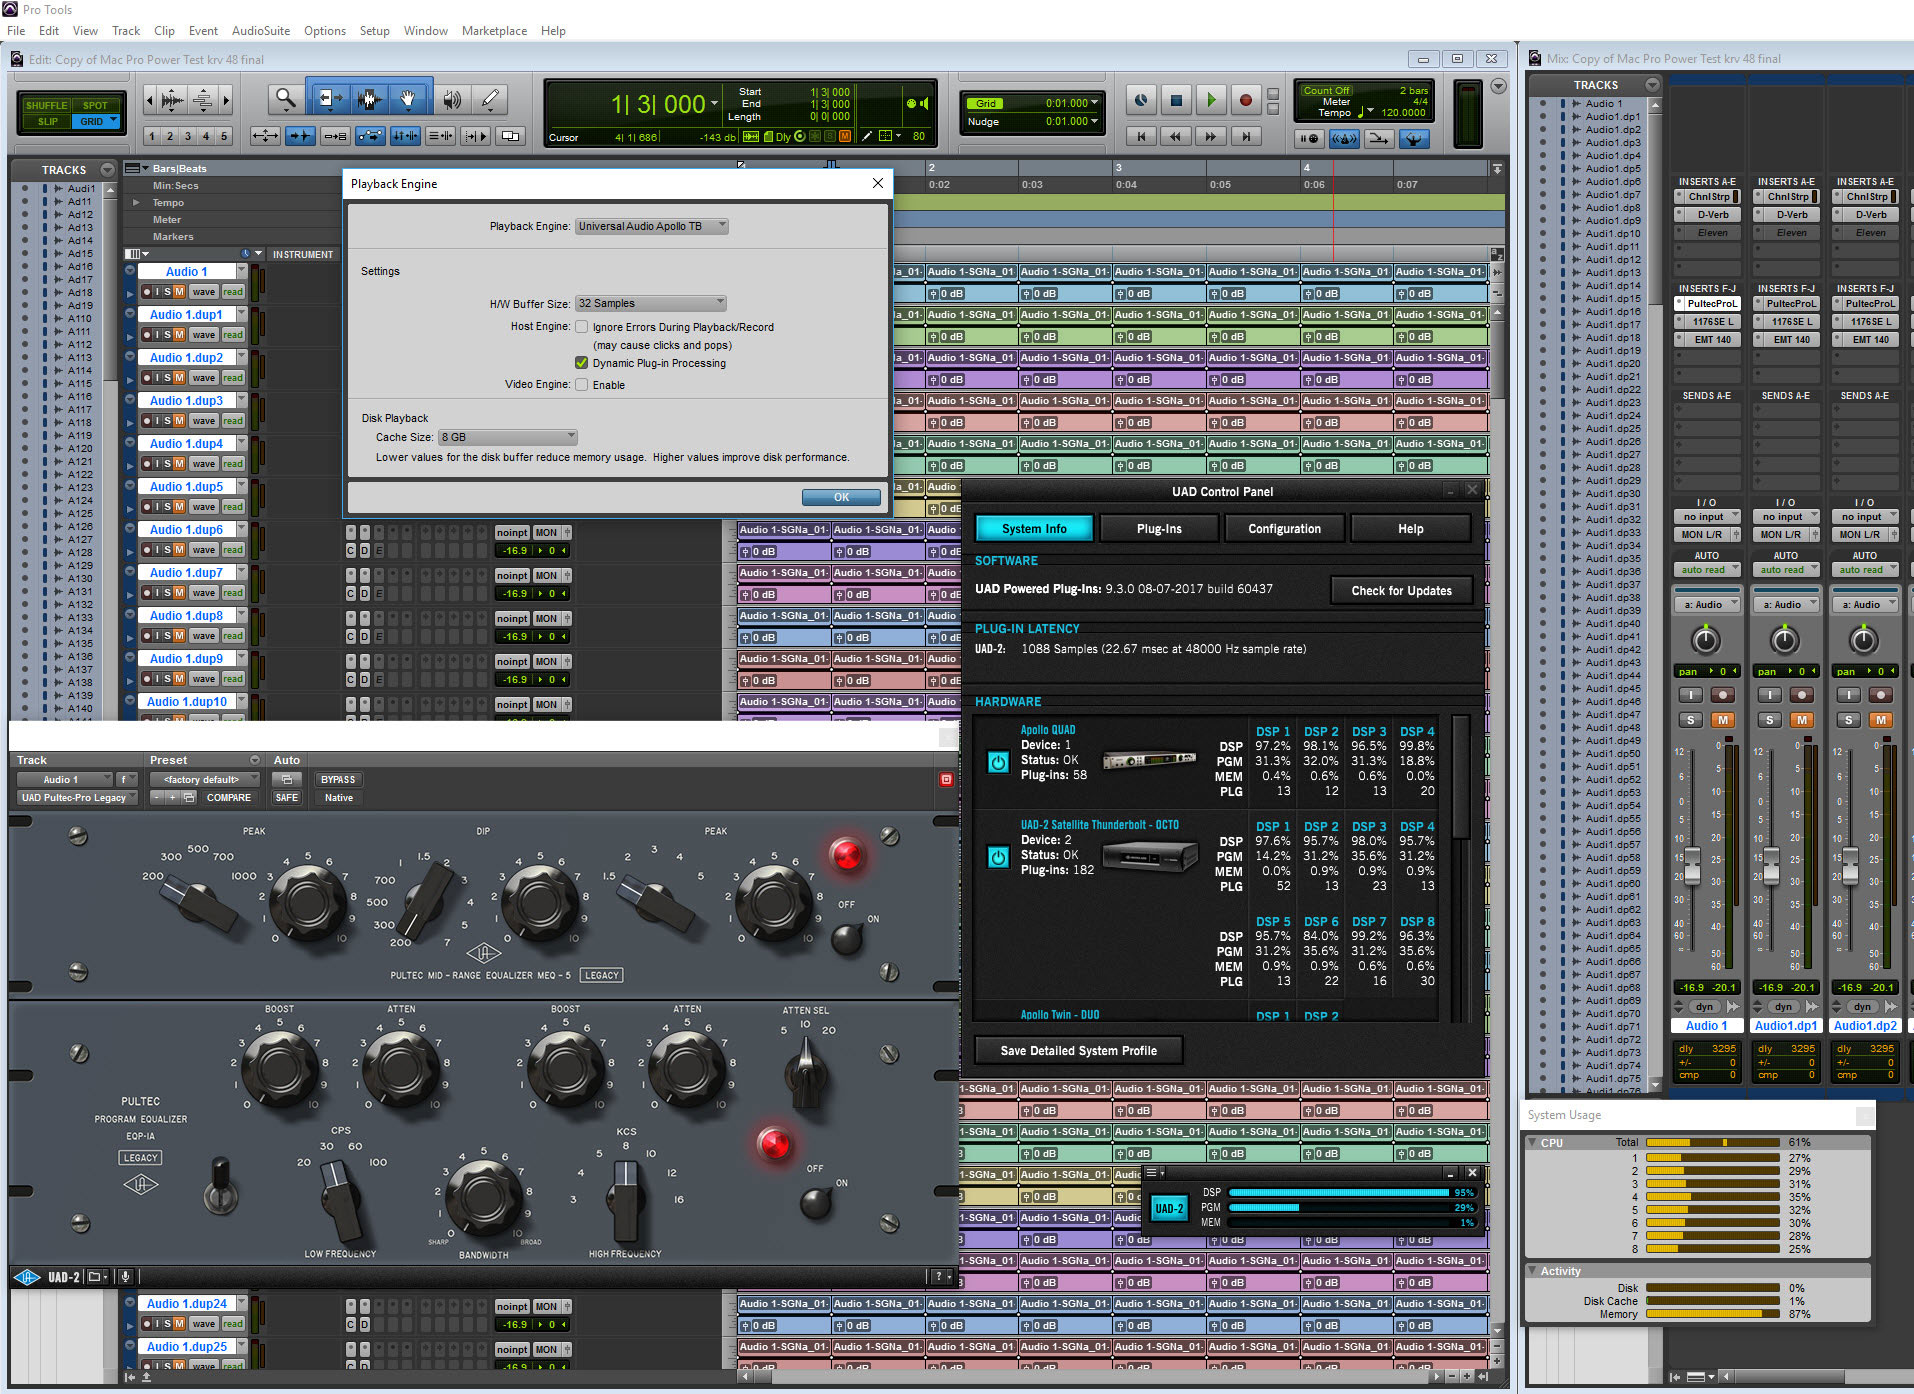 UAD v9.3 Running In Pro Tools 12.7.1 - Click on image to see the full sized image